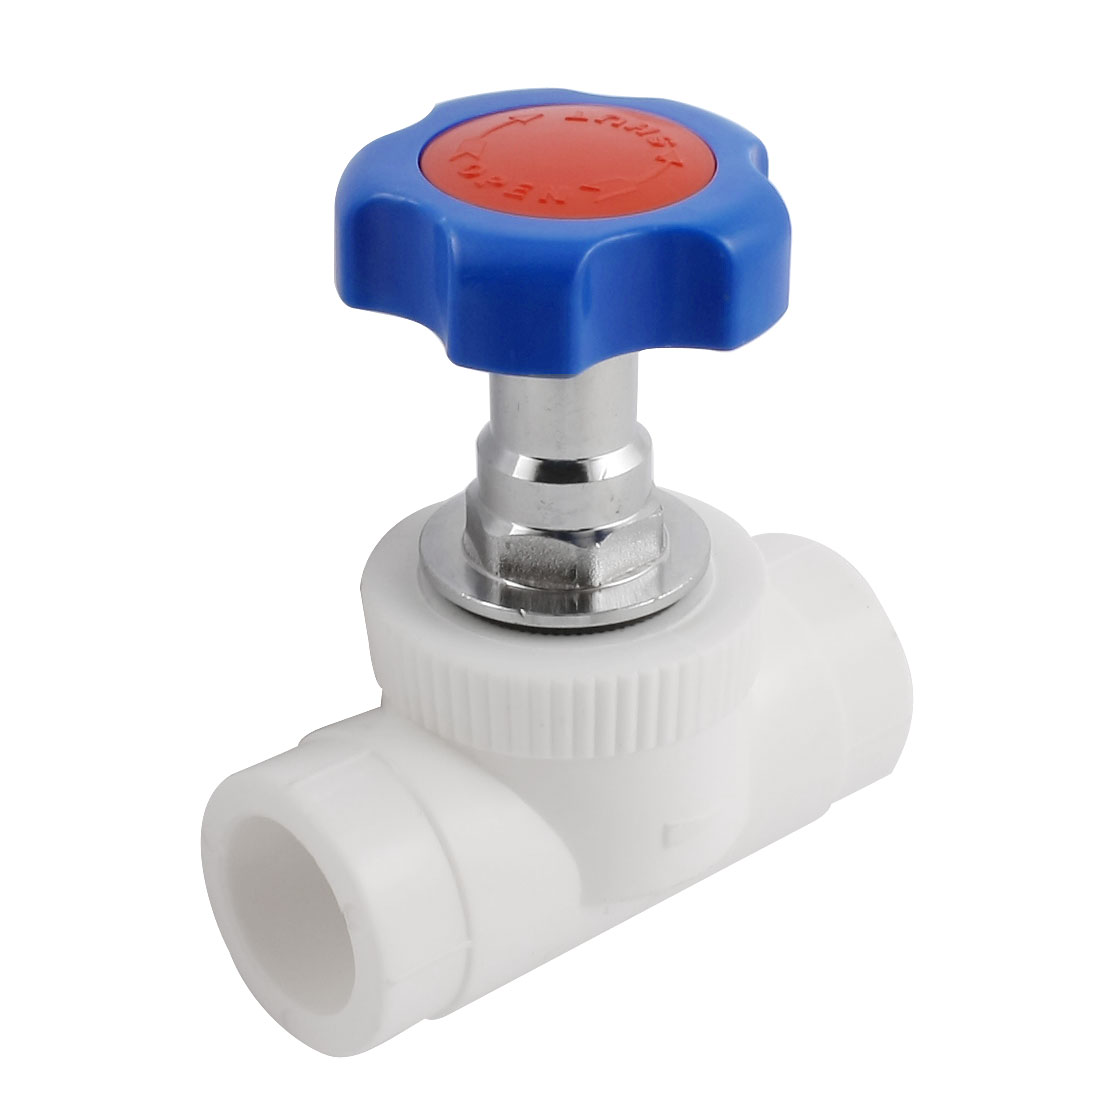 Blue Rotary Knob 24mm x 24mm Hole Stop Water PPR Gate Valve